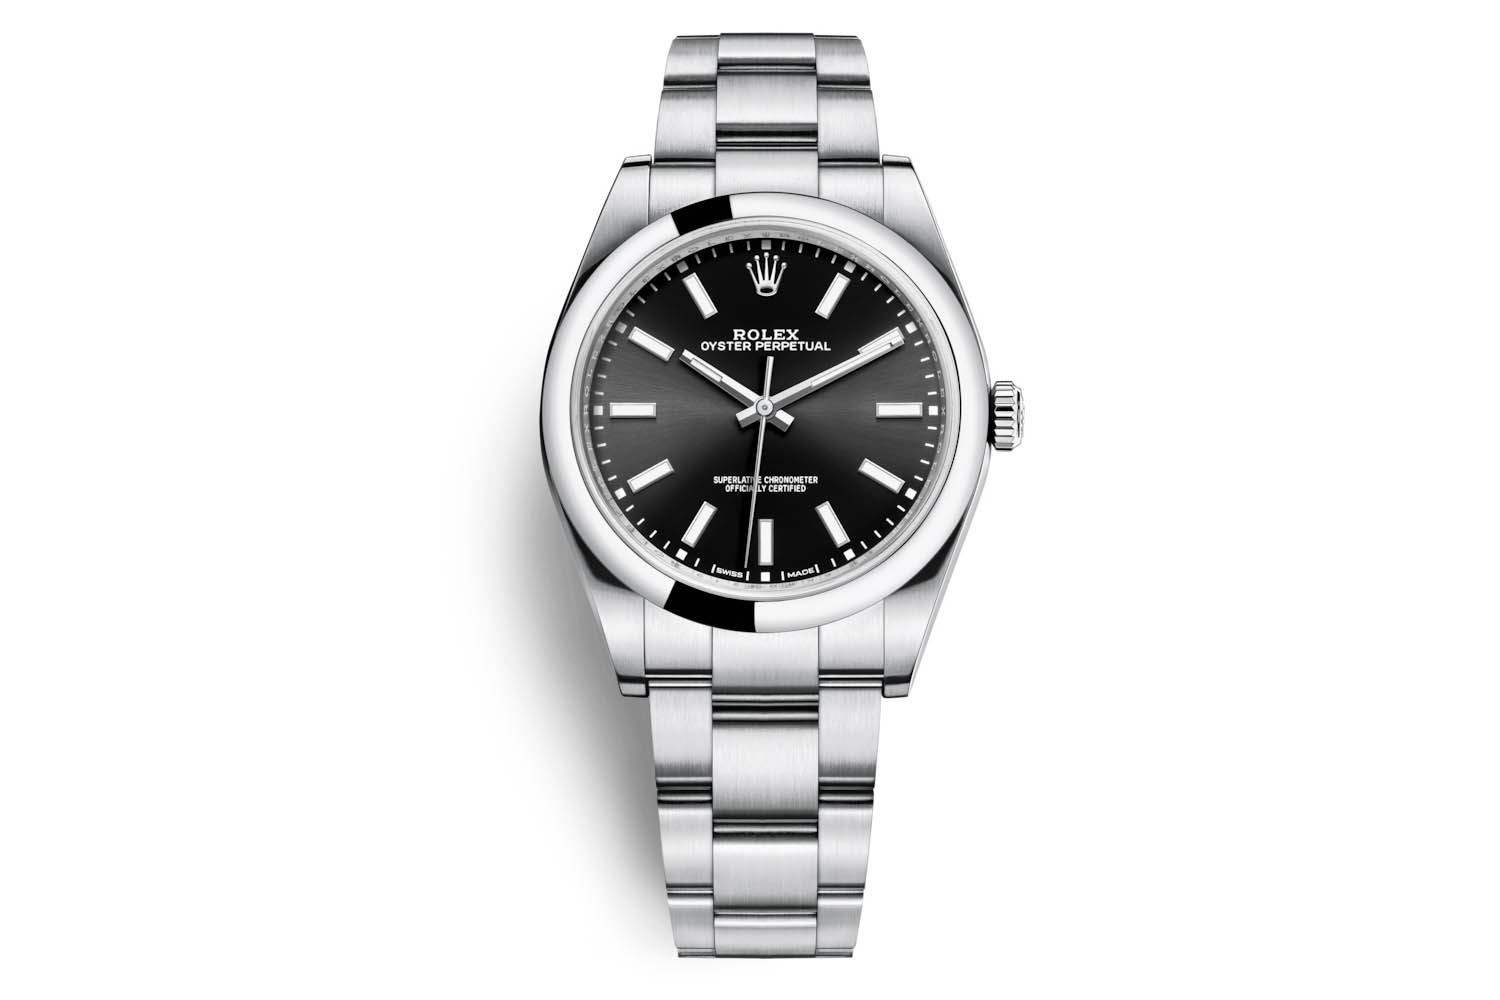 Rolex Oyster Perpetual 39 ref 114300 Black Dial